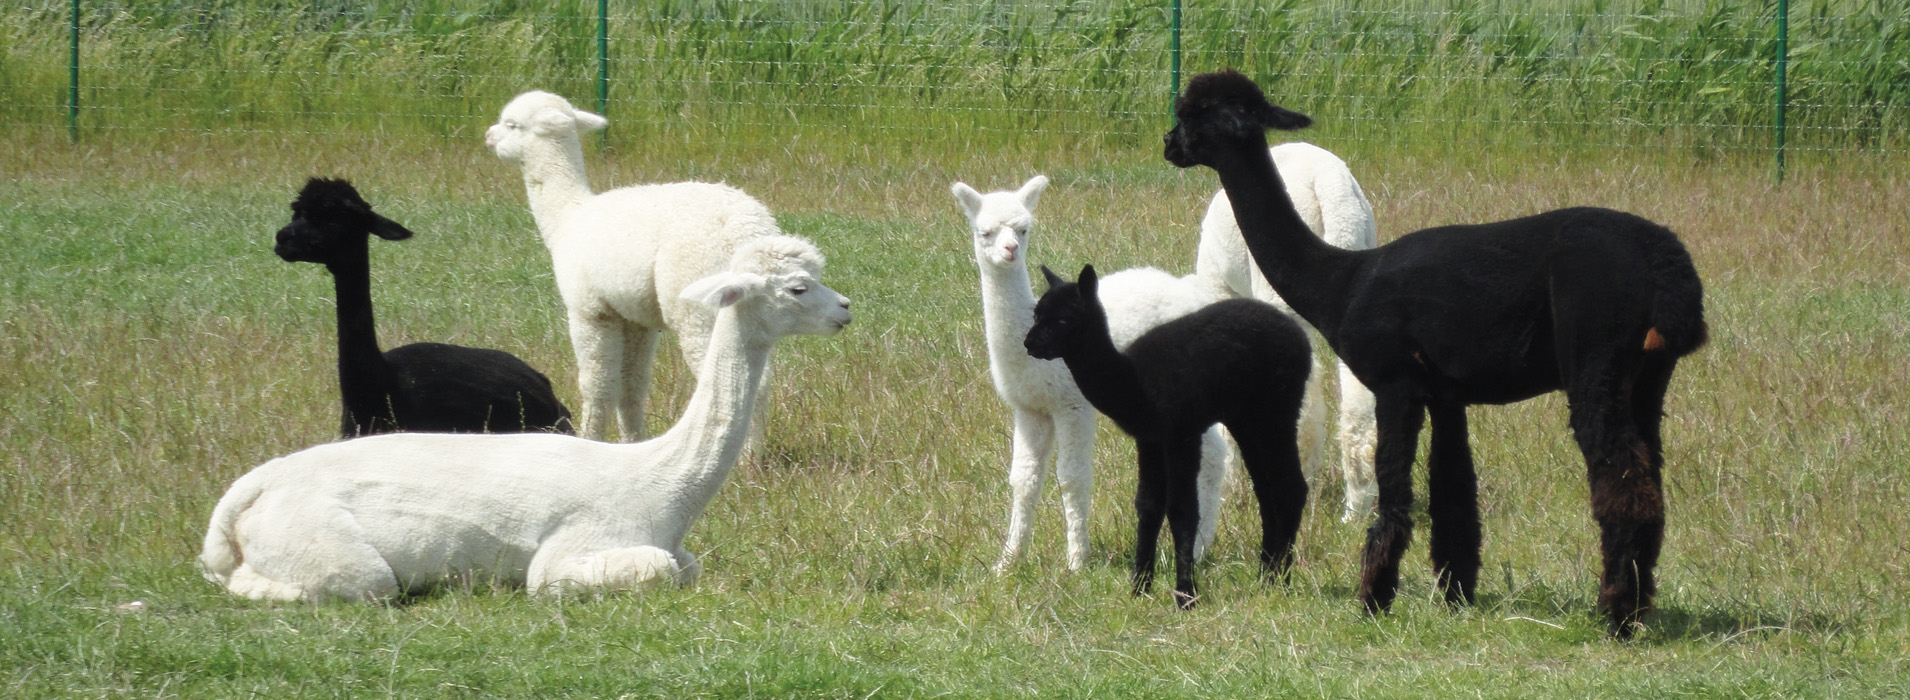 Alpaca-World-Brielle